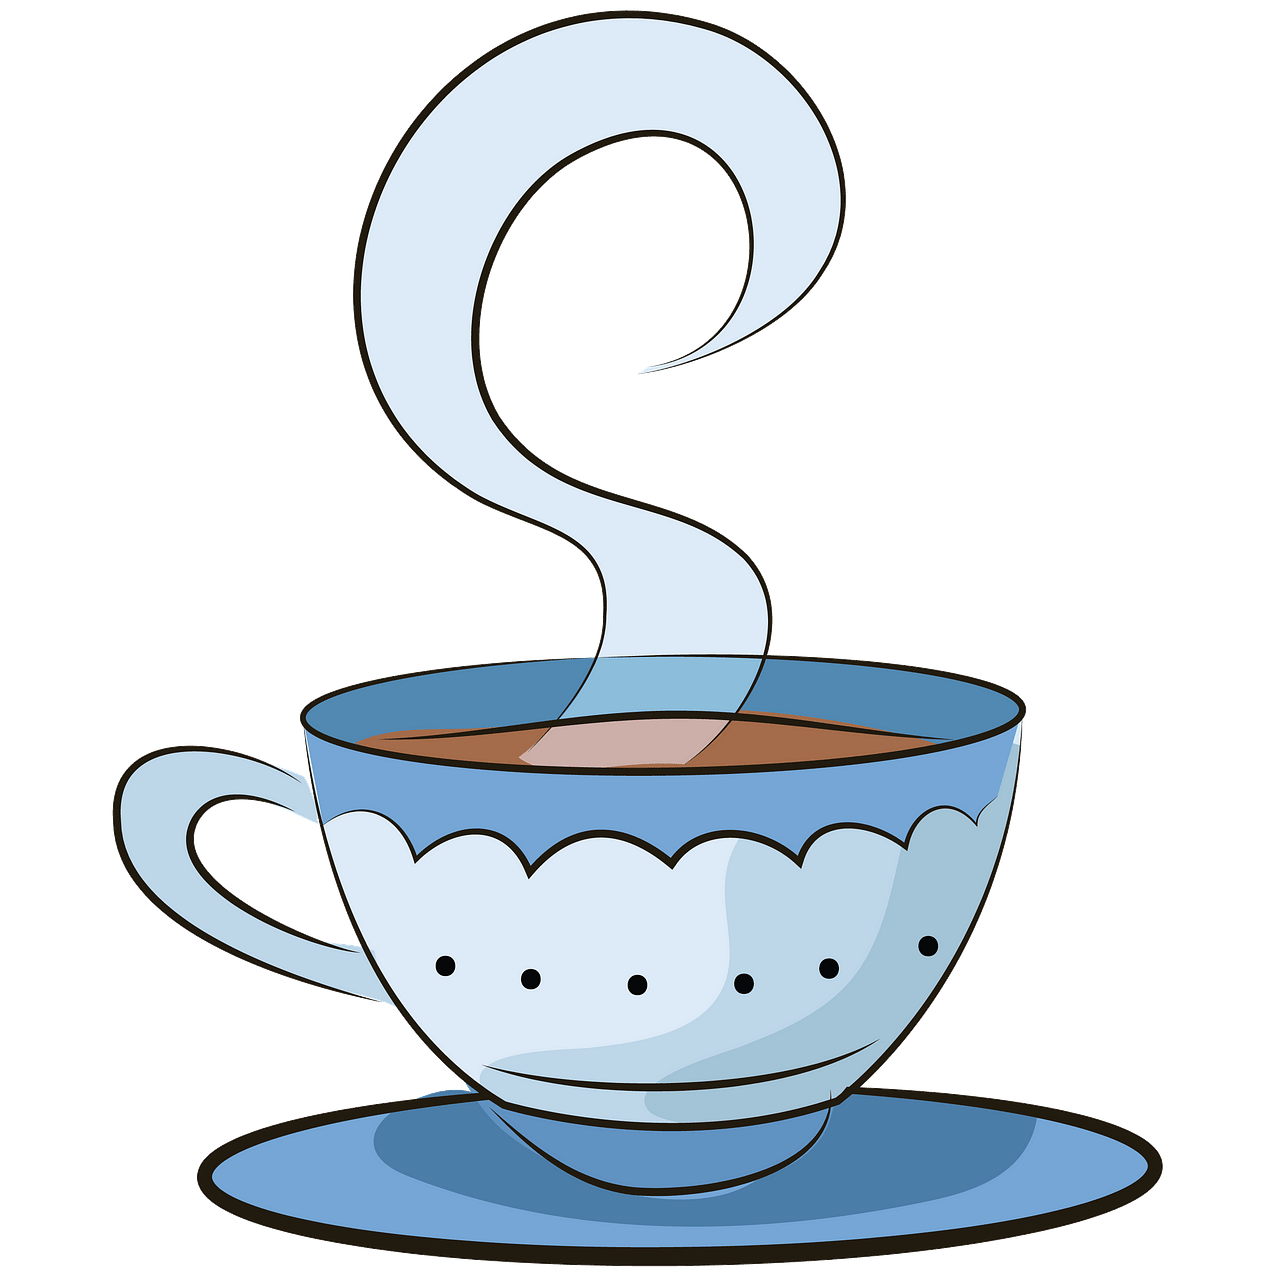 Cup of tea clipart. Free download..